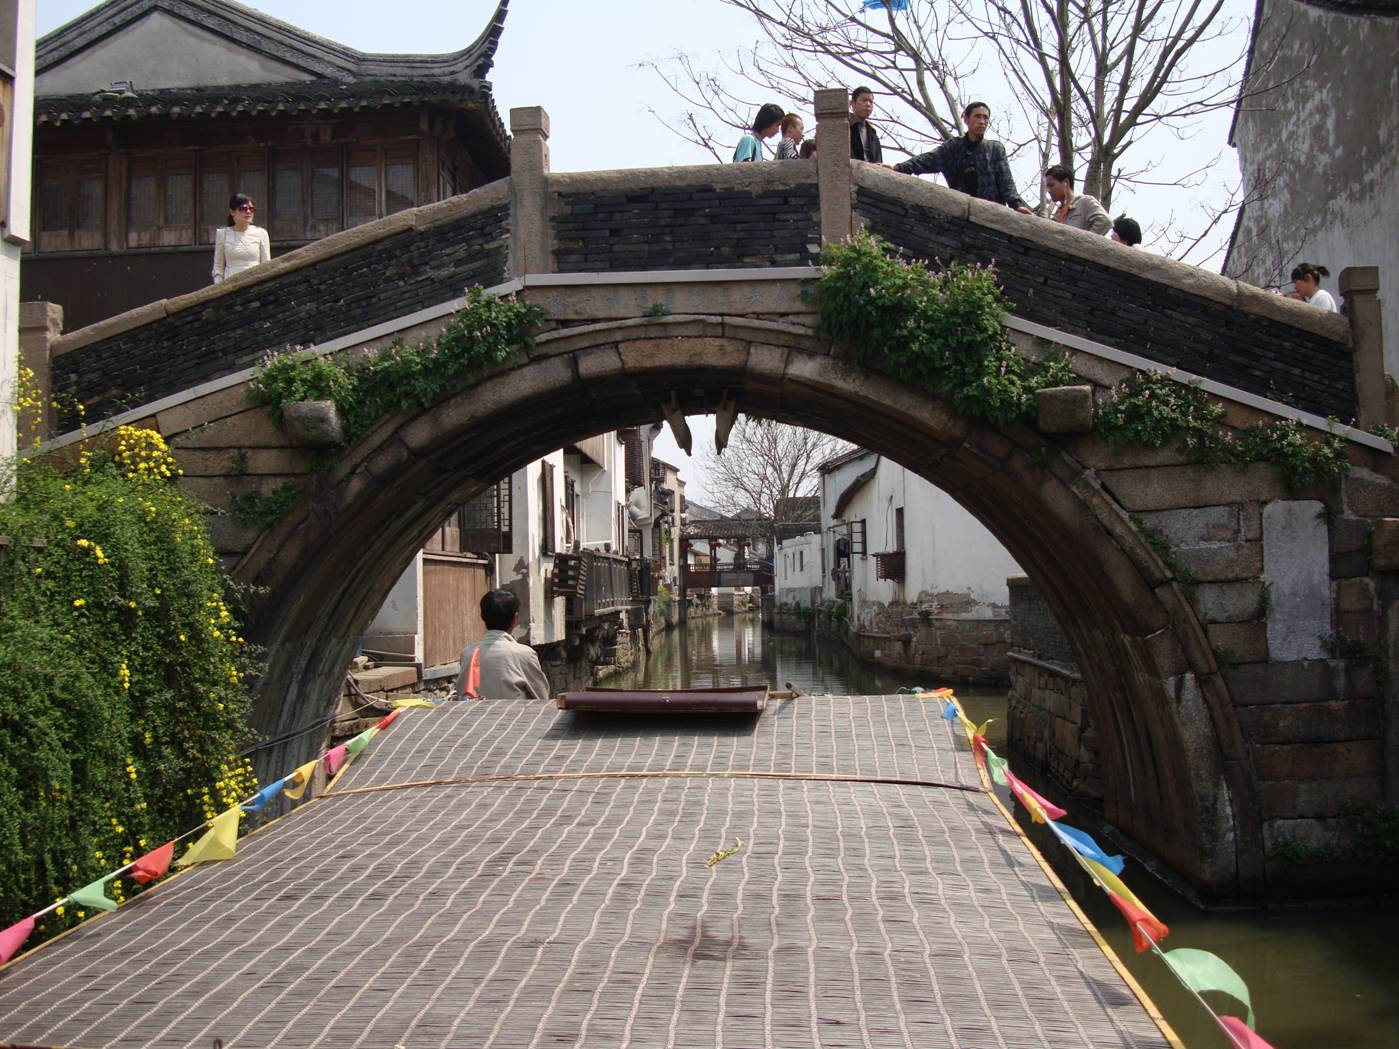 Picture:  Our canal tour boat goes under an old pedestrian bridge.  Suzhou, China